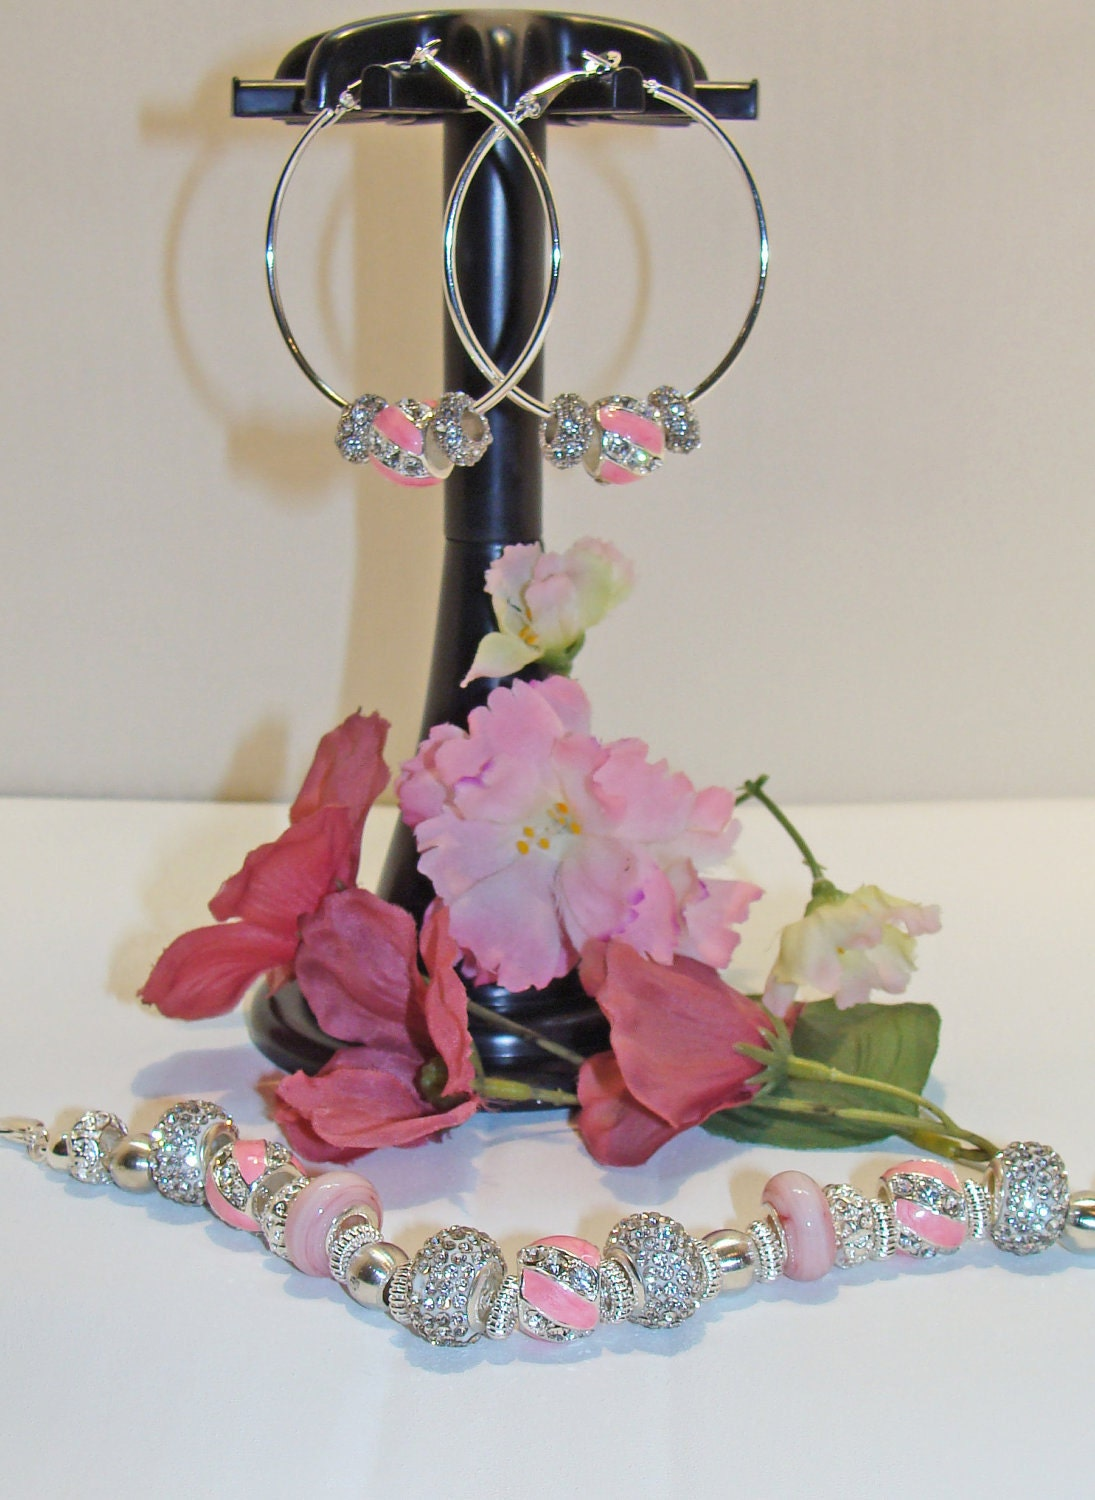 Pandora Style Beads Pink and Crystal Hoop Earrings